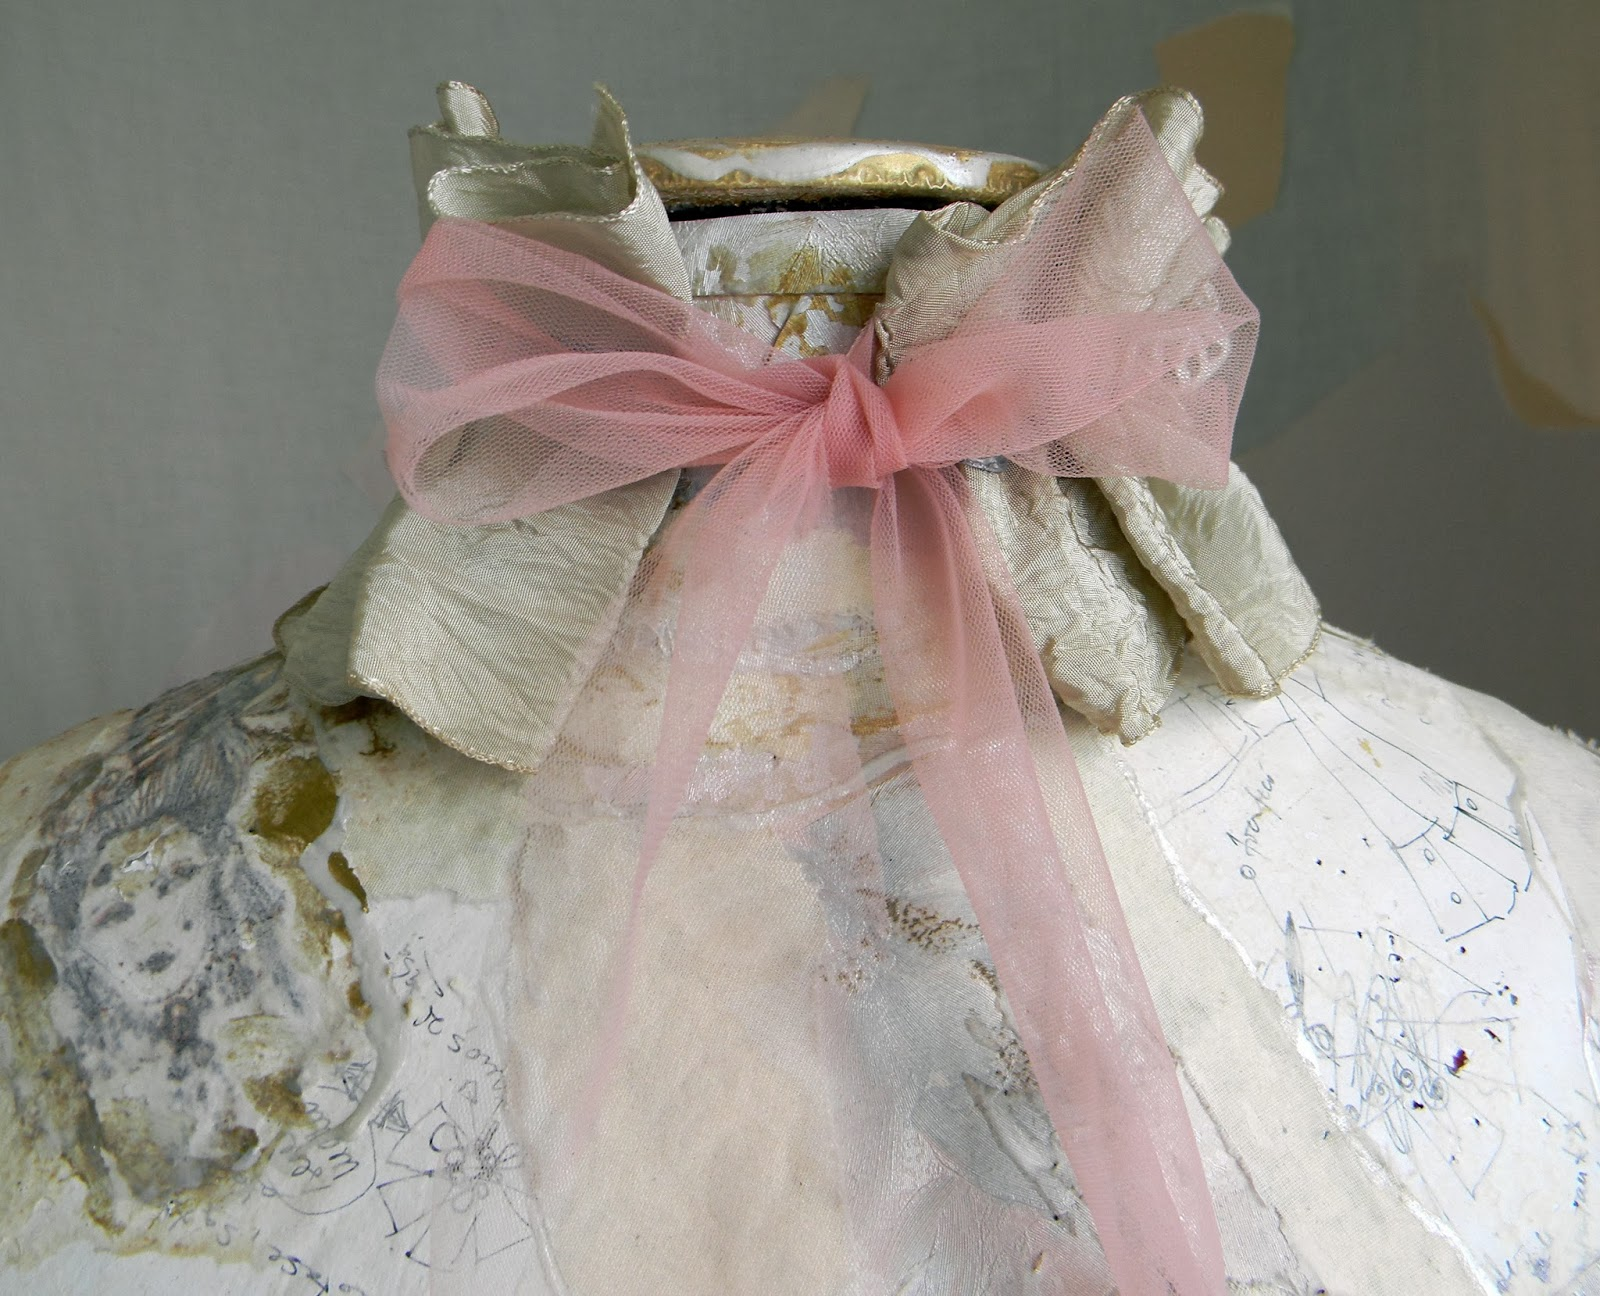 Ethereal Fashion Choker Ruffled Neck Corset in Delicate Textile Pastels